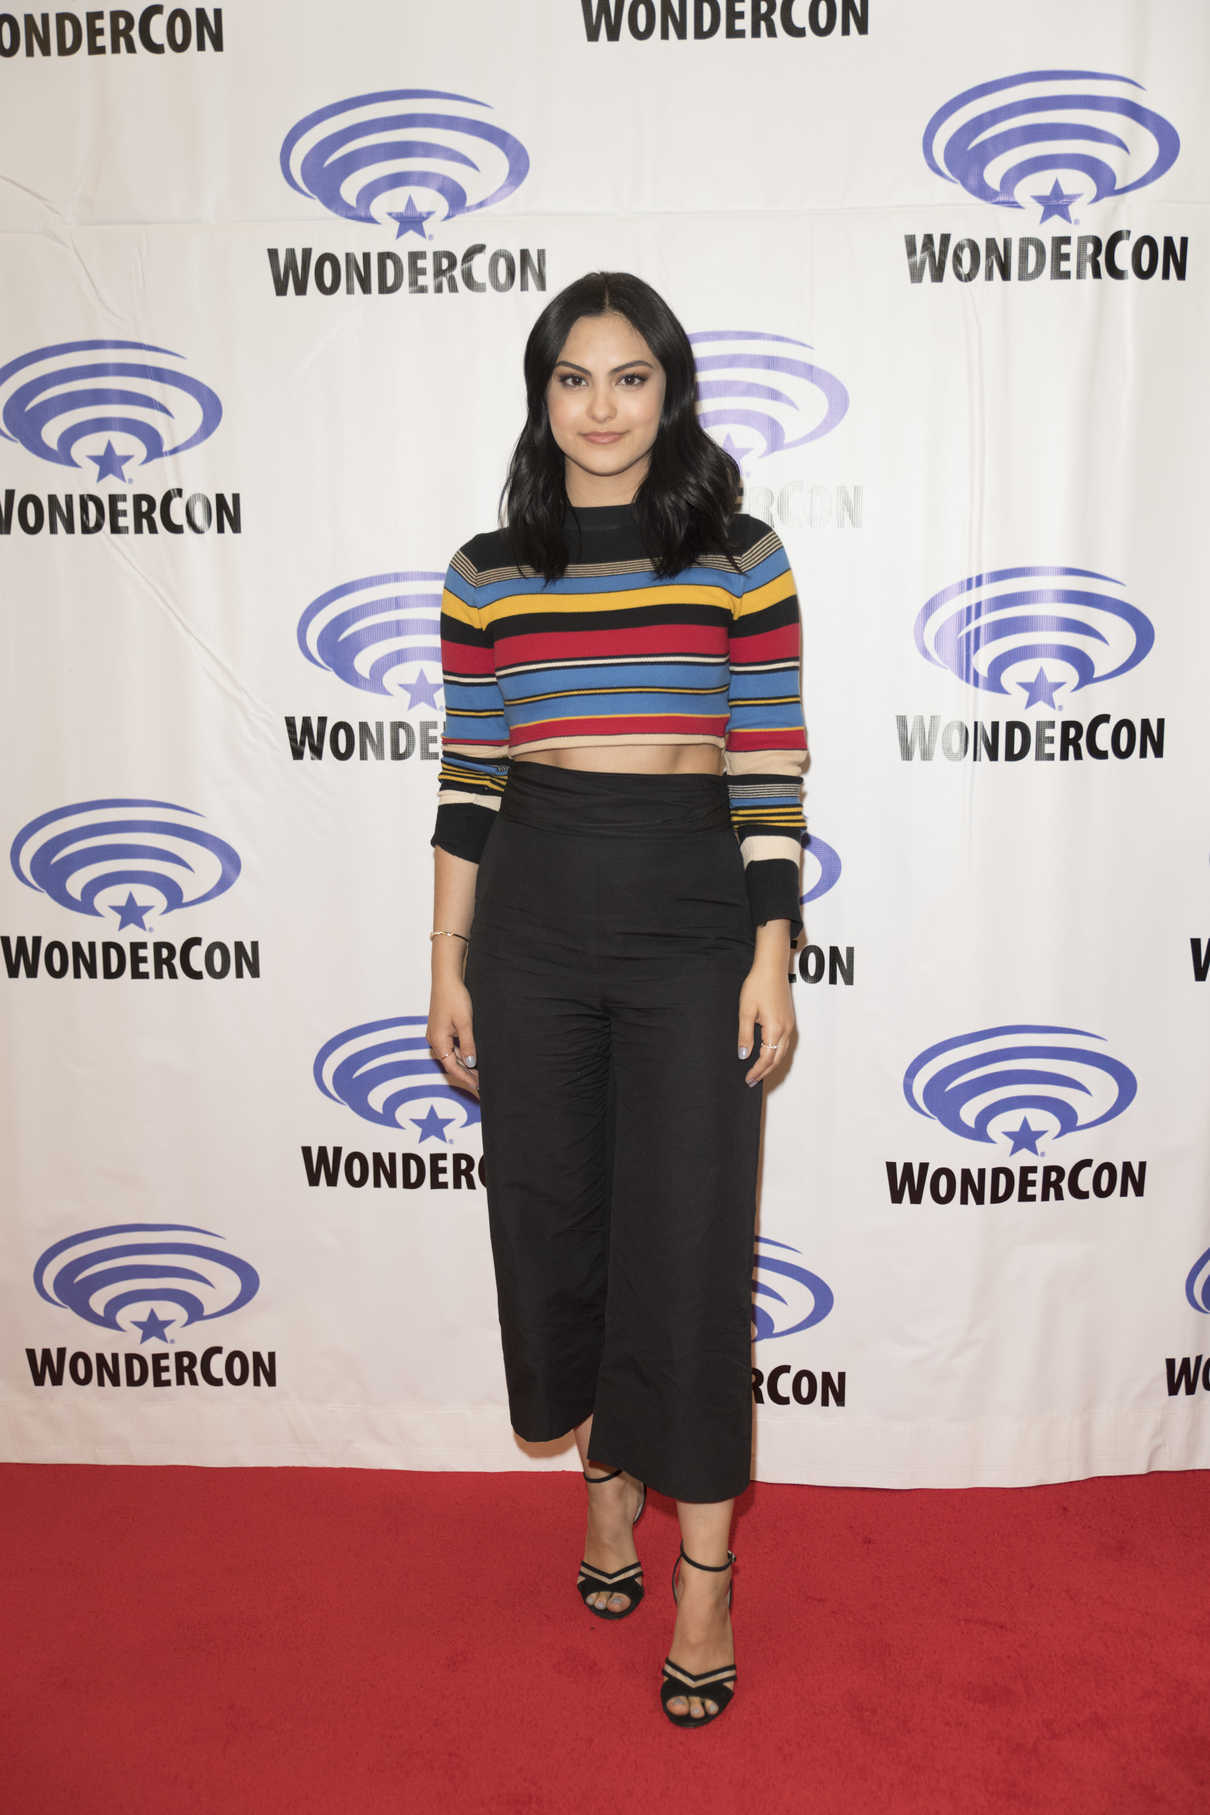 Camila Mendes at the Riverdale Press Room at WonderCon in Anaheim 04/01/2017